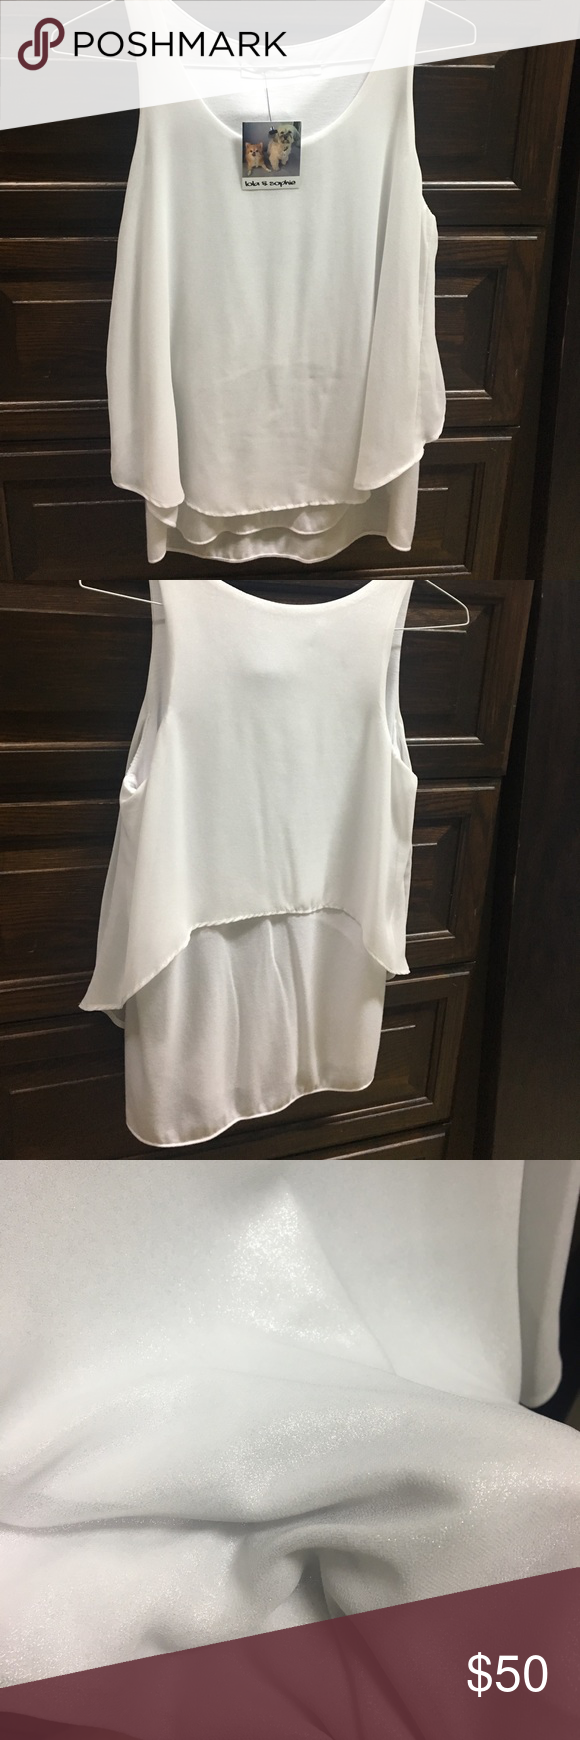 LOLA AND SOPHIE | double layered white tank Never been worn. Can be dressed up or down. Has a sparkle to it on the top layer and bottom layer is a soft cotton. lola and sophie Tops Tank Tops